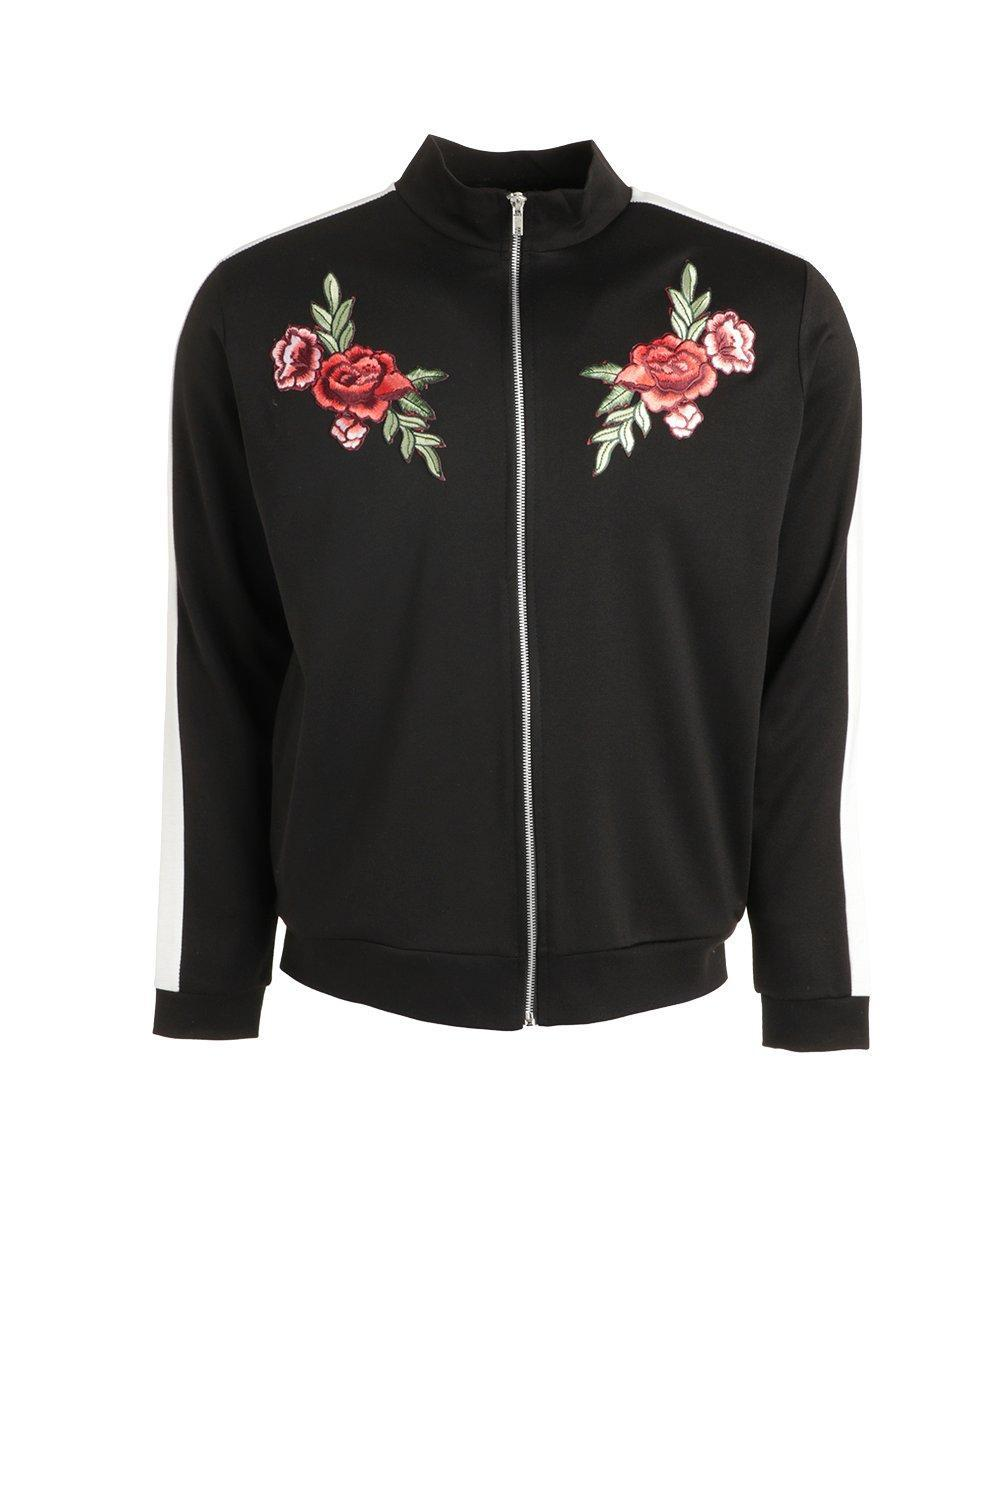 Boohoo Synthetic Contrast Panel Track Top With Floral Embroidery in Black for Men